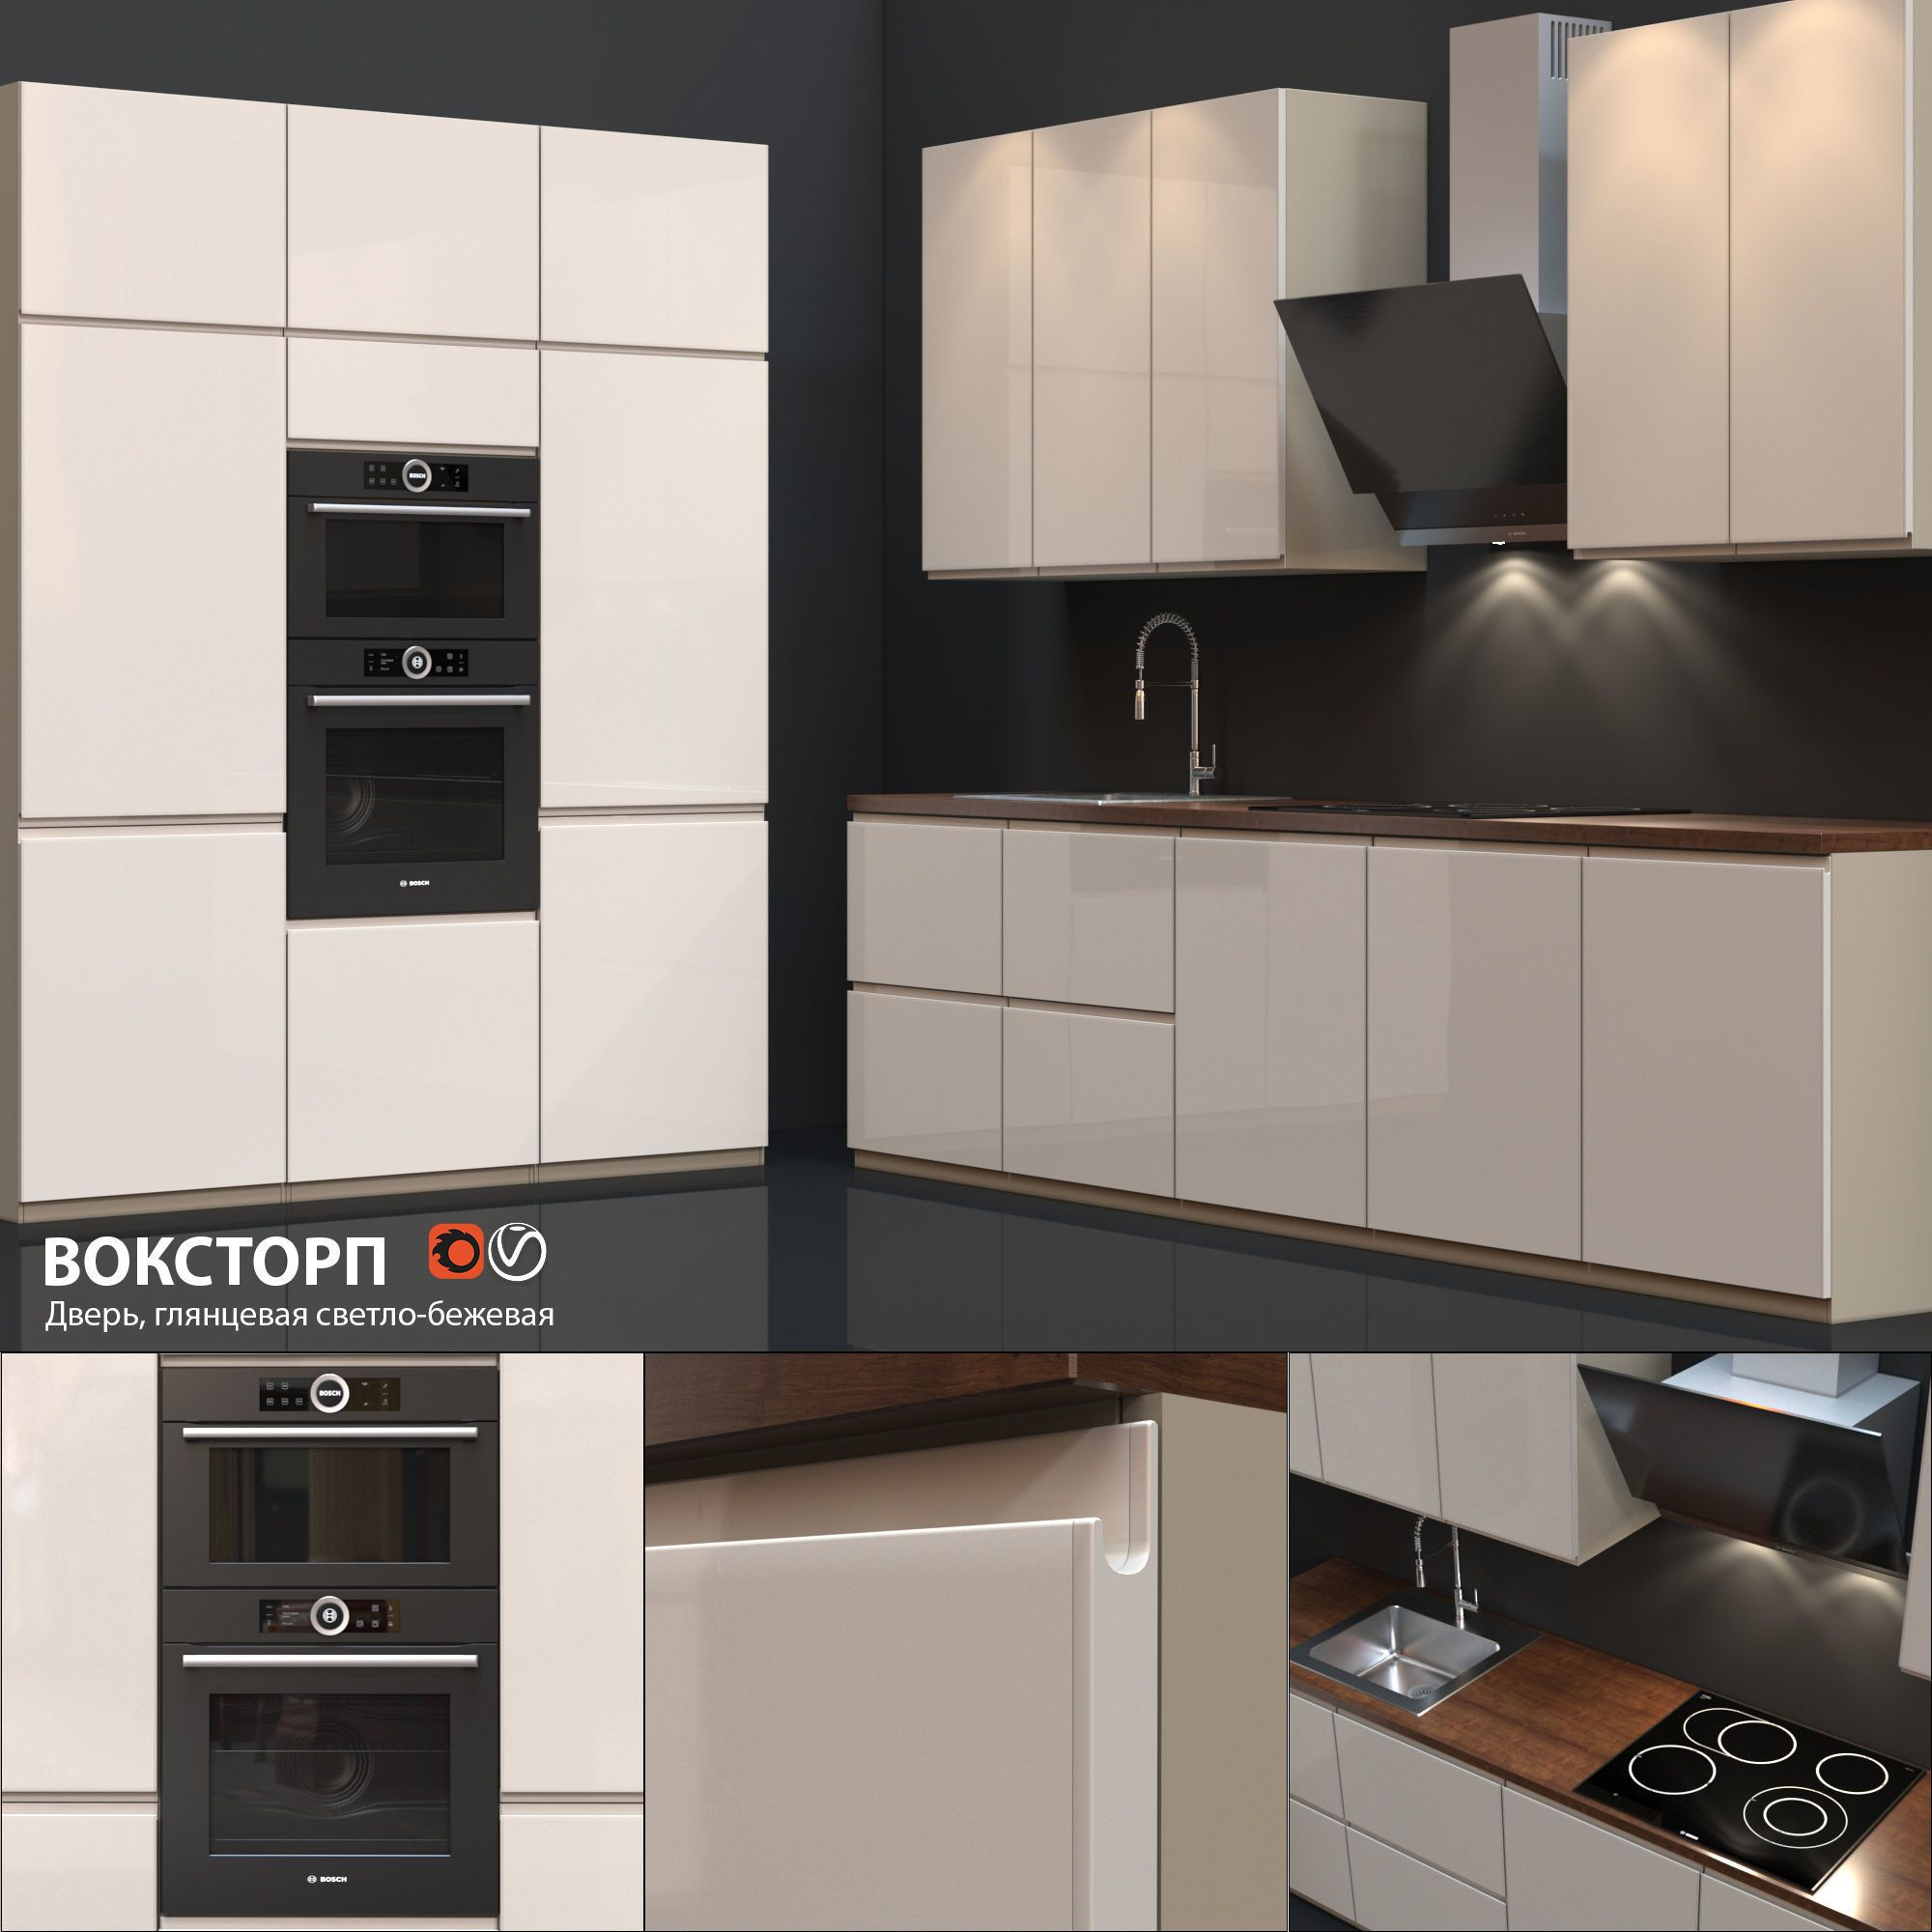 Kitchen 3d Model In 2020 Kitchen 3d Model Modern Kitchen Interiors Kitchen Interior